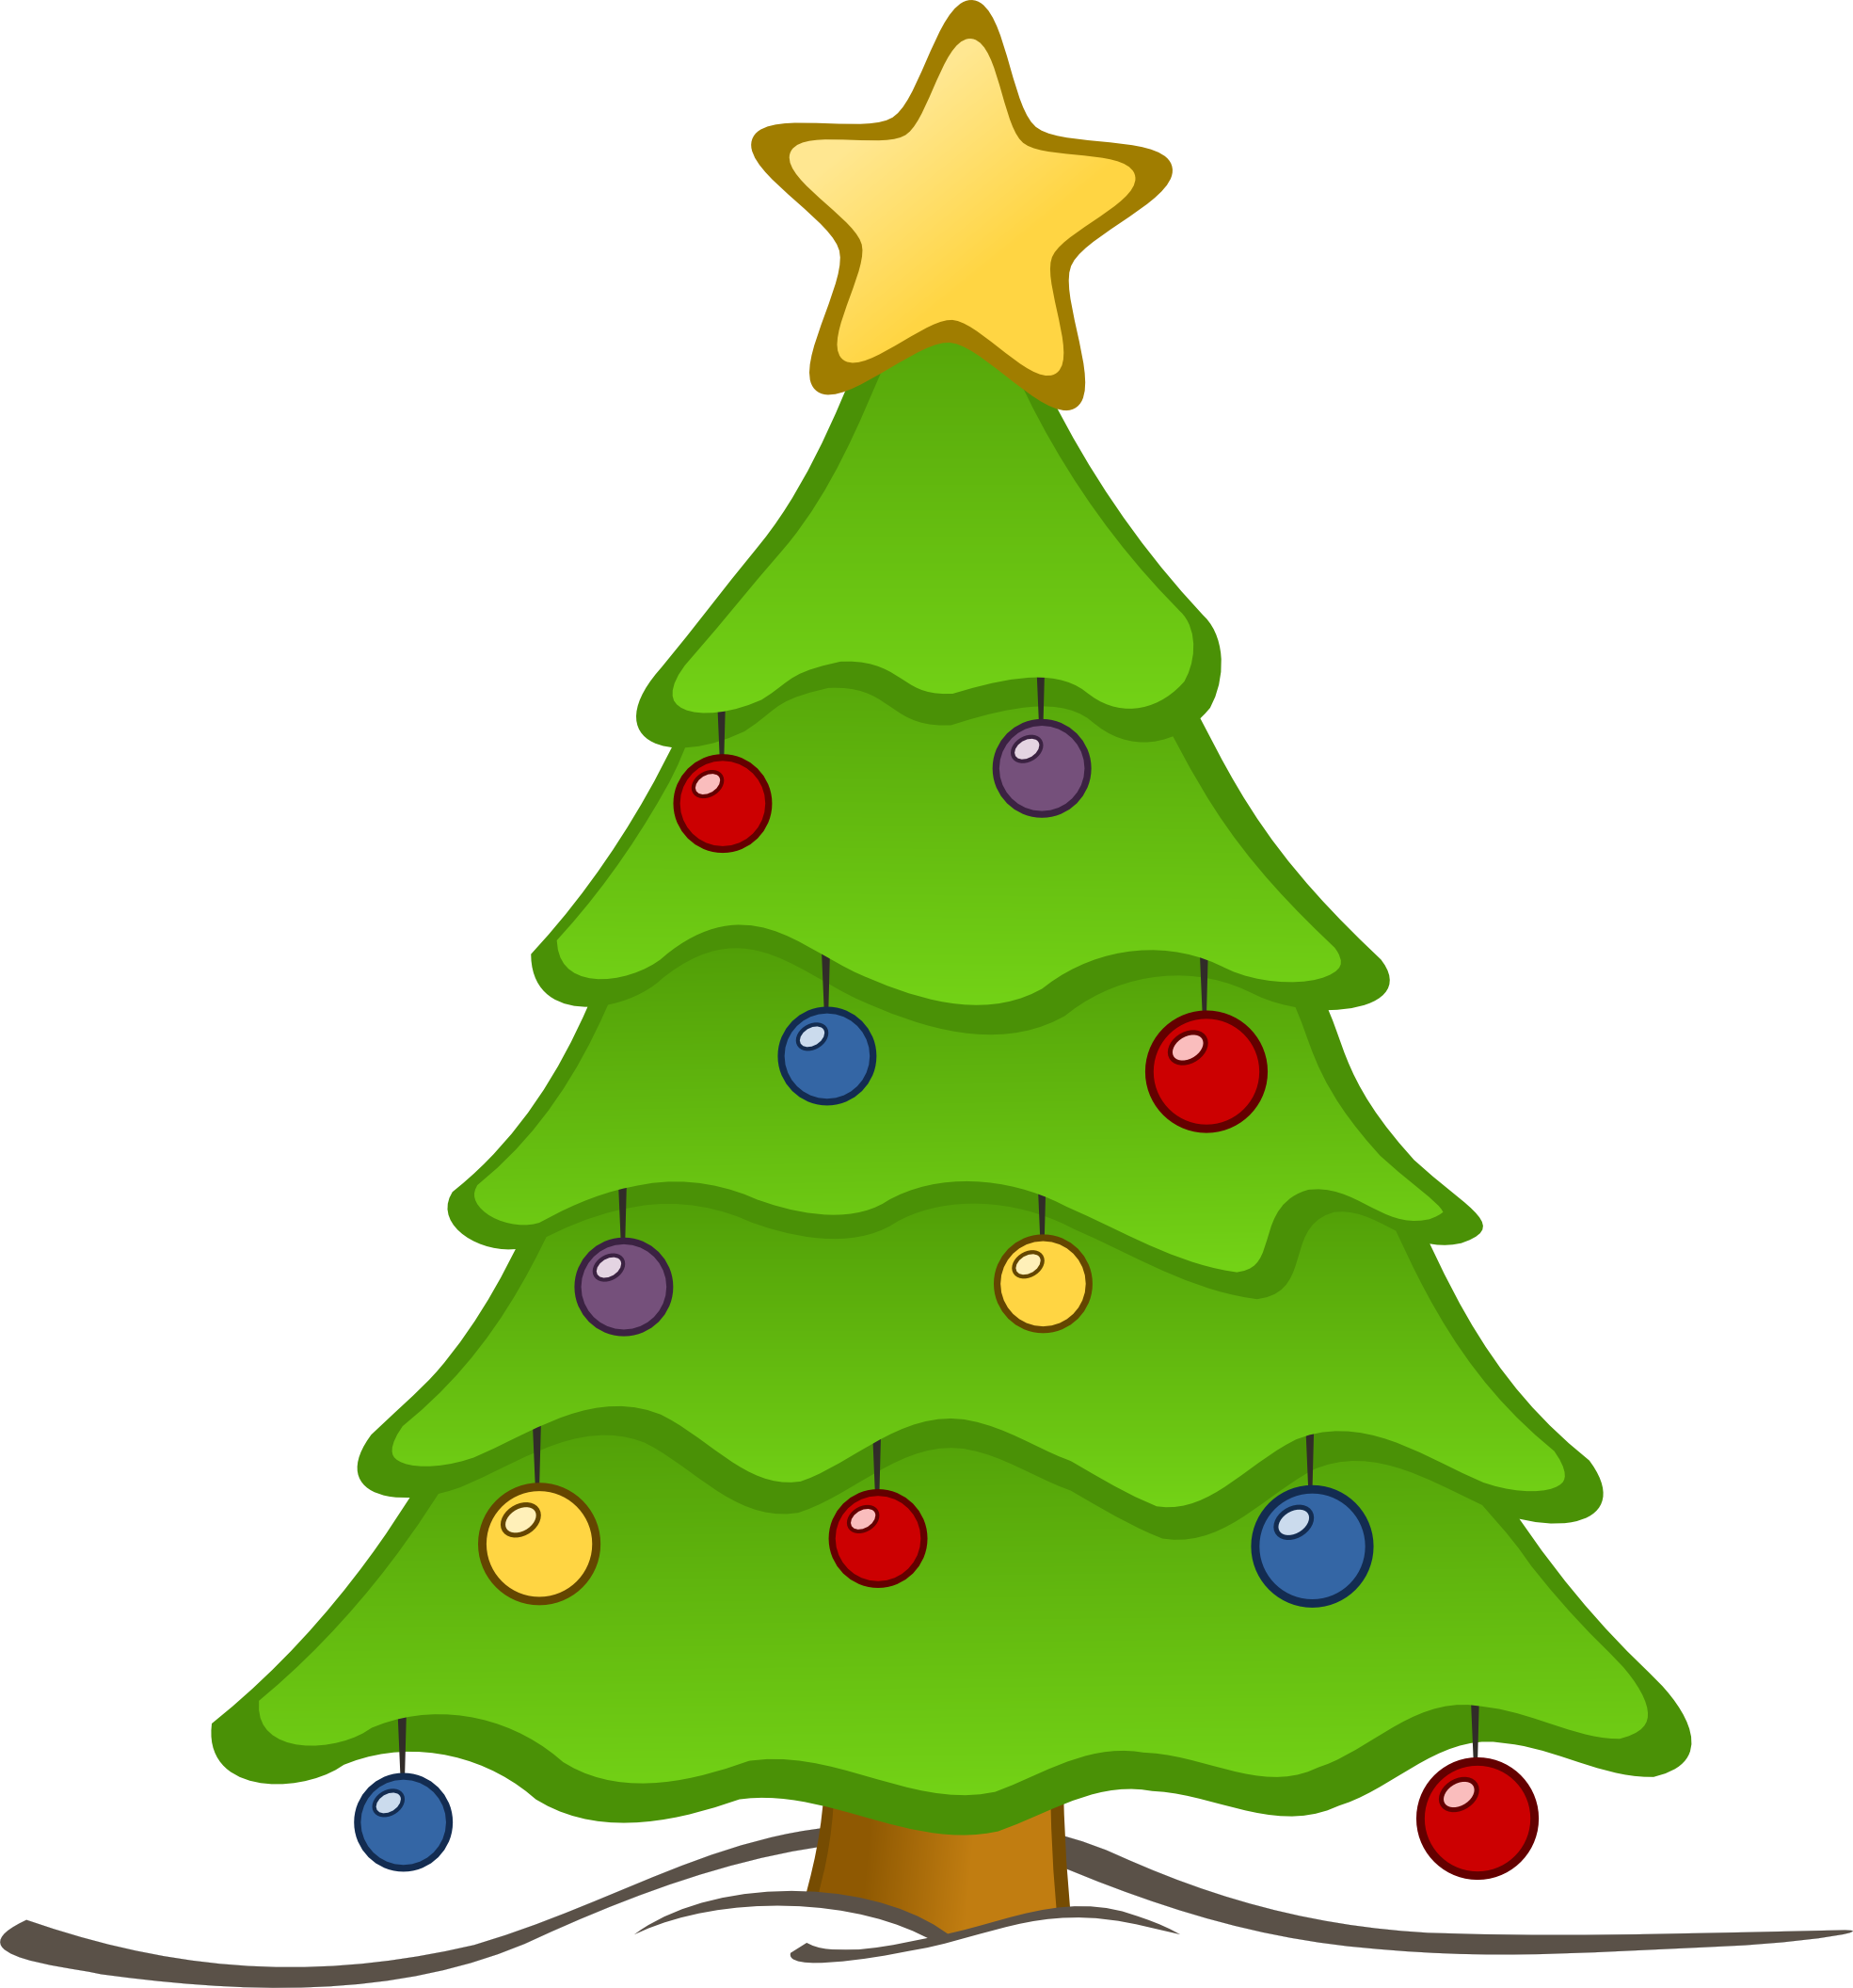 Grinch clipart christmas tree. Arsenal